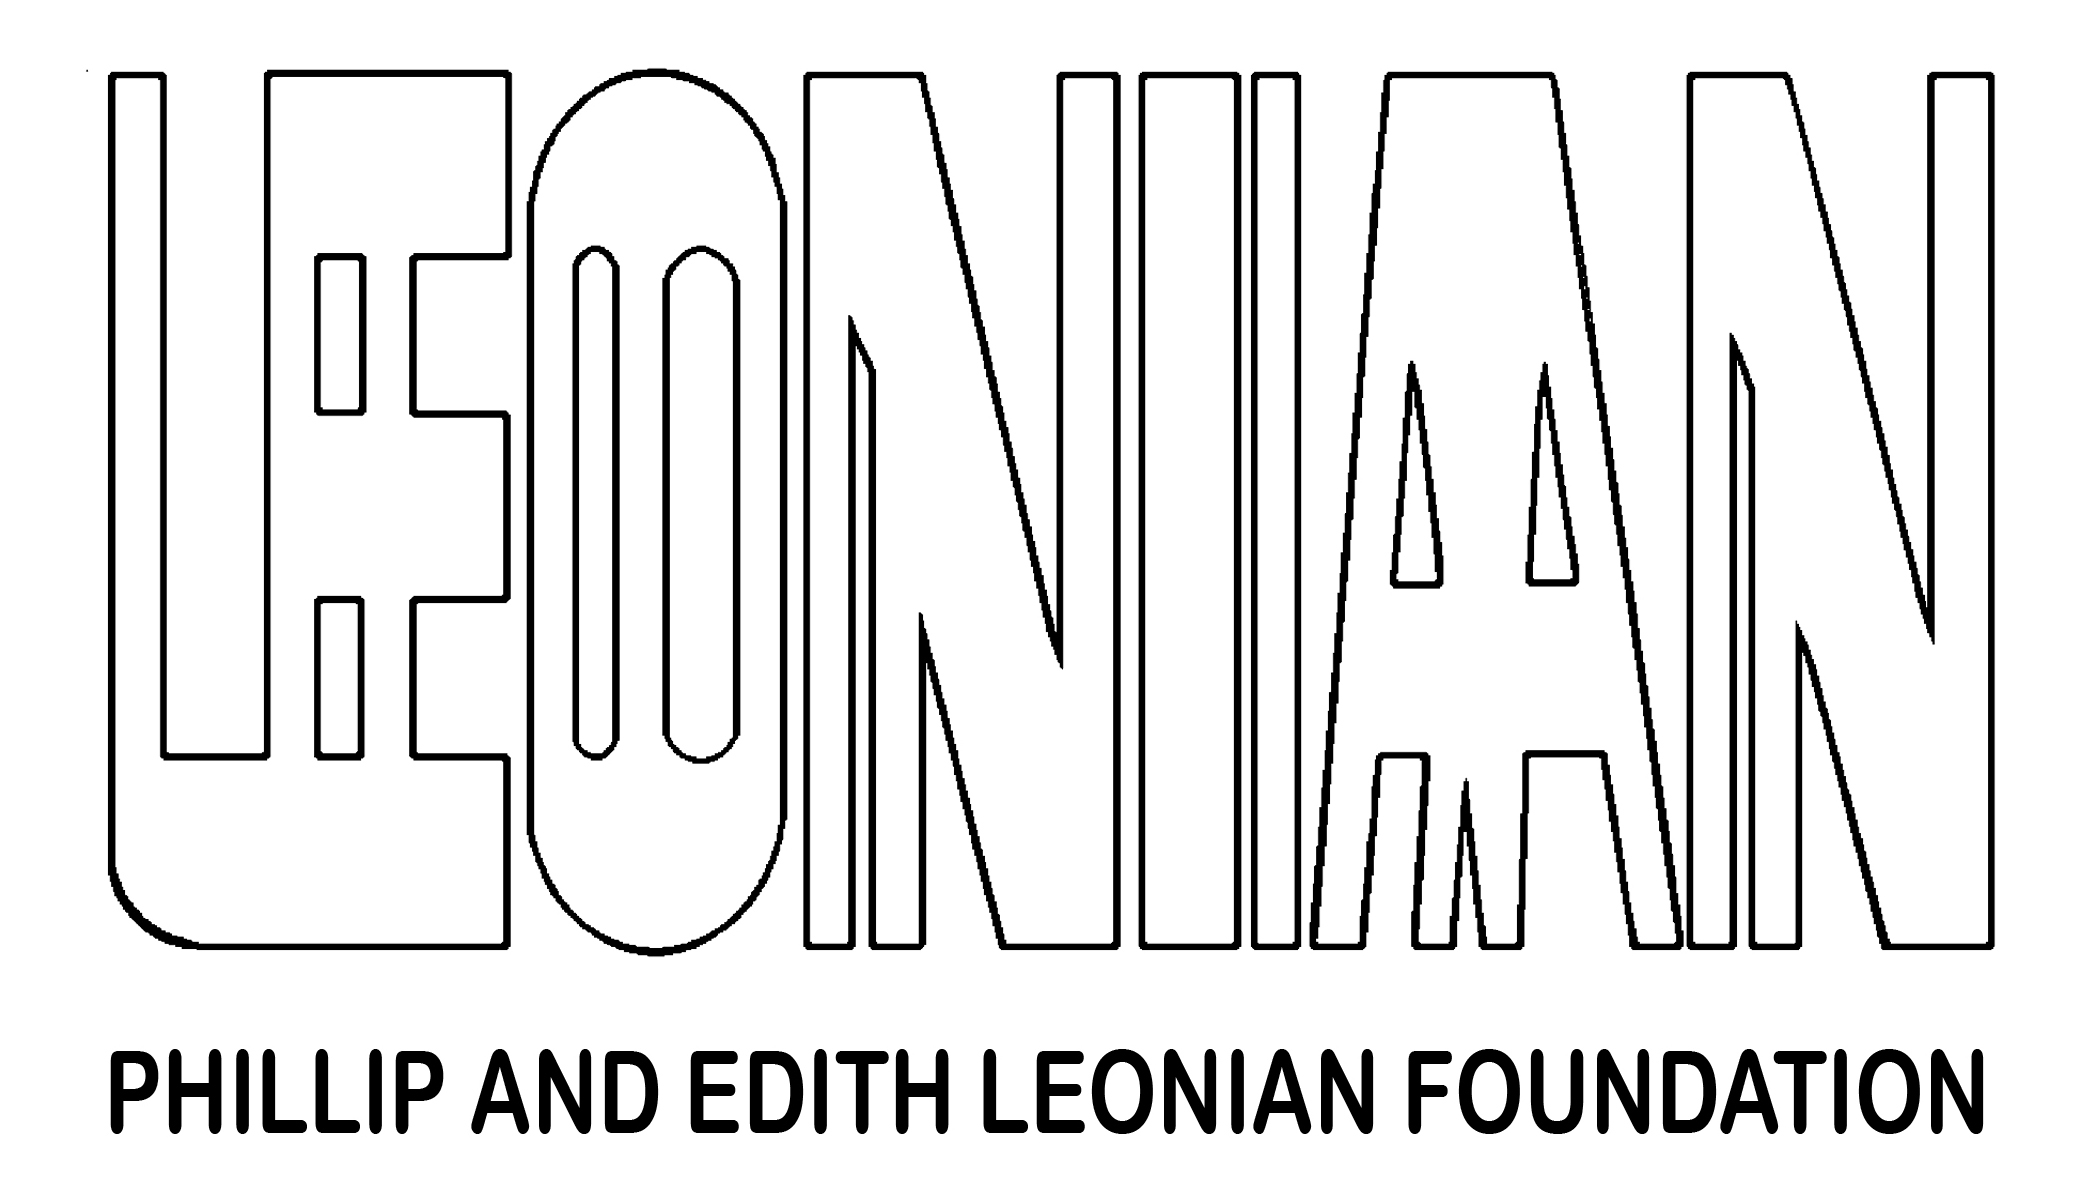 Digital cameras for student use and printing of photography & advocacy newspaper was made possible by funding support from the PHILLIP AND EDITH LEONIAN FOUNDATION